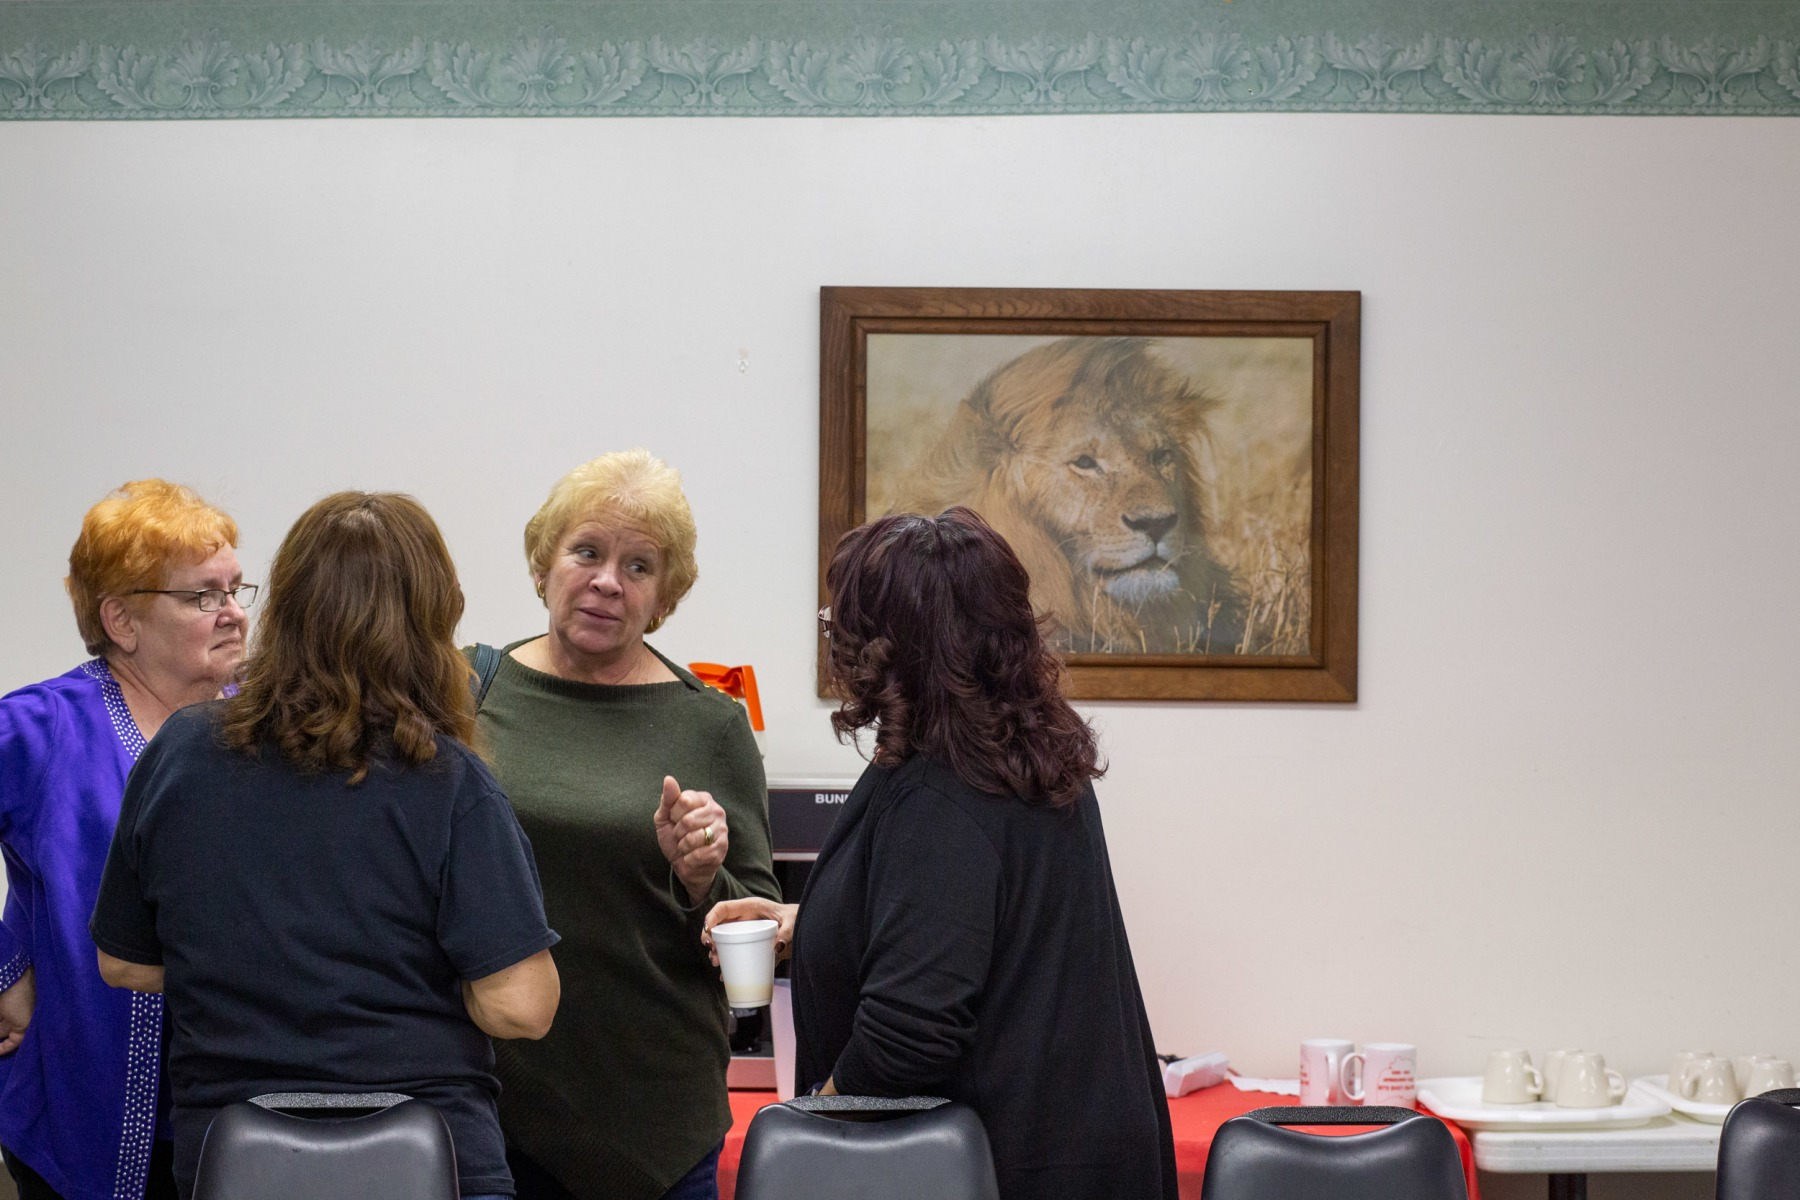 Kaye Hatzer, Denise Tate, Sue Hill, and Lori Norman chat over coffee and pancakes at the Chesterhill Lions Club Breakfast. Once a month, a steady crowd of current and former residents come together to reconnect and exchange stories with their family and neighbors.